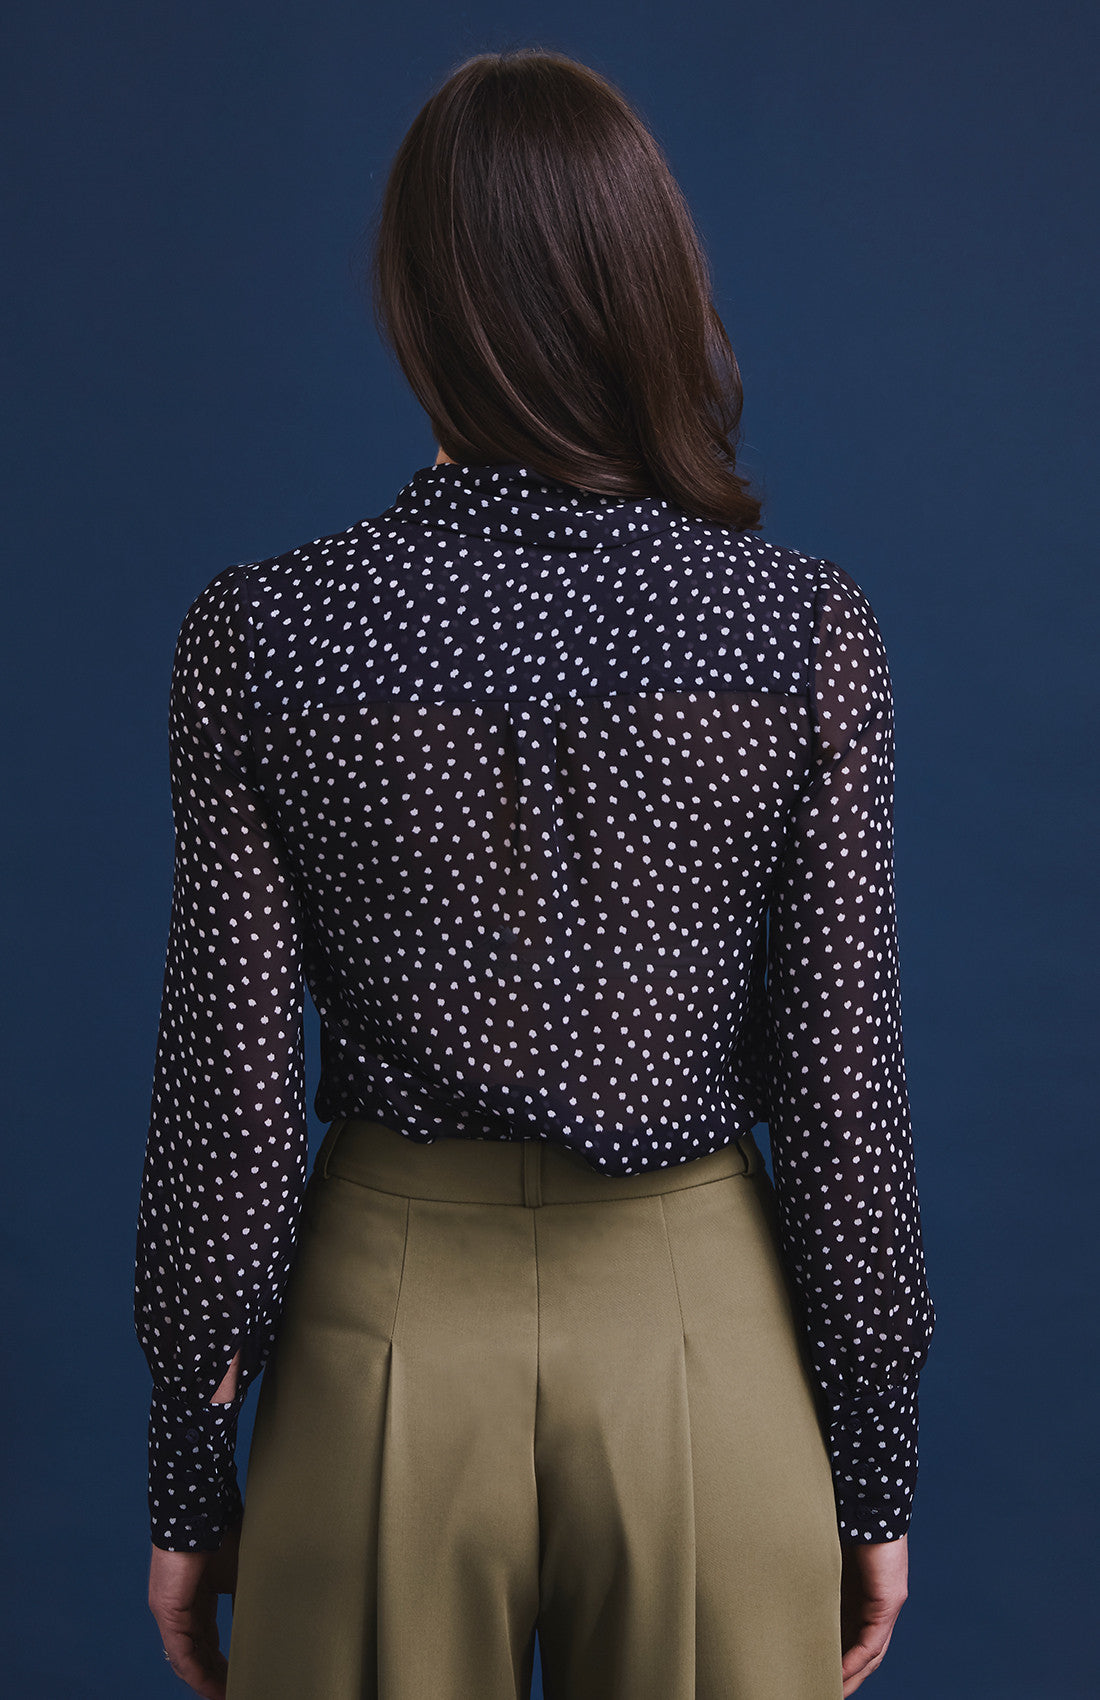 Luxury polka dot pussybow work blouse with balloon sleeves for the office navy and white